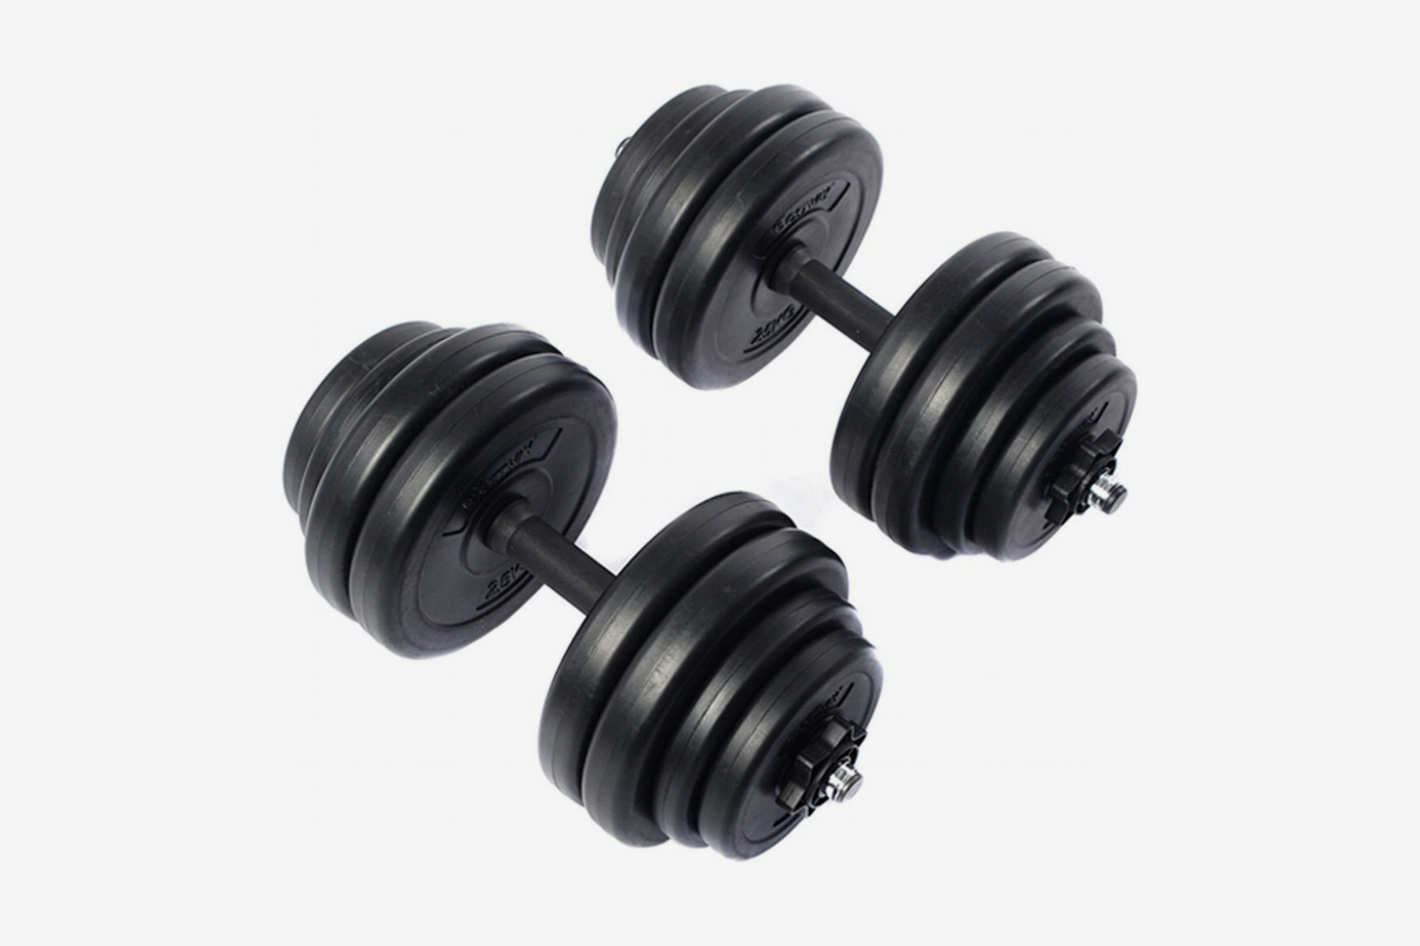 Giantex Adjustable 66-Pound Dumbbell Set